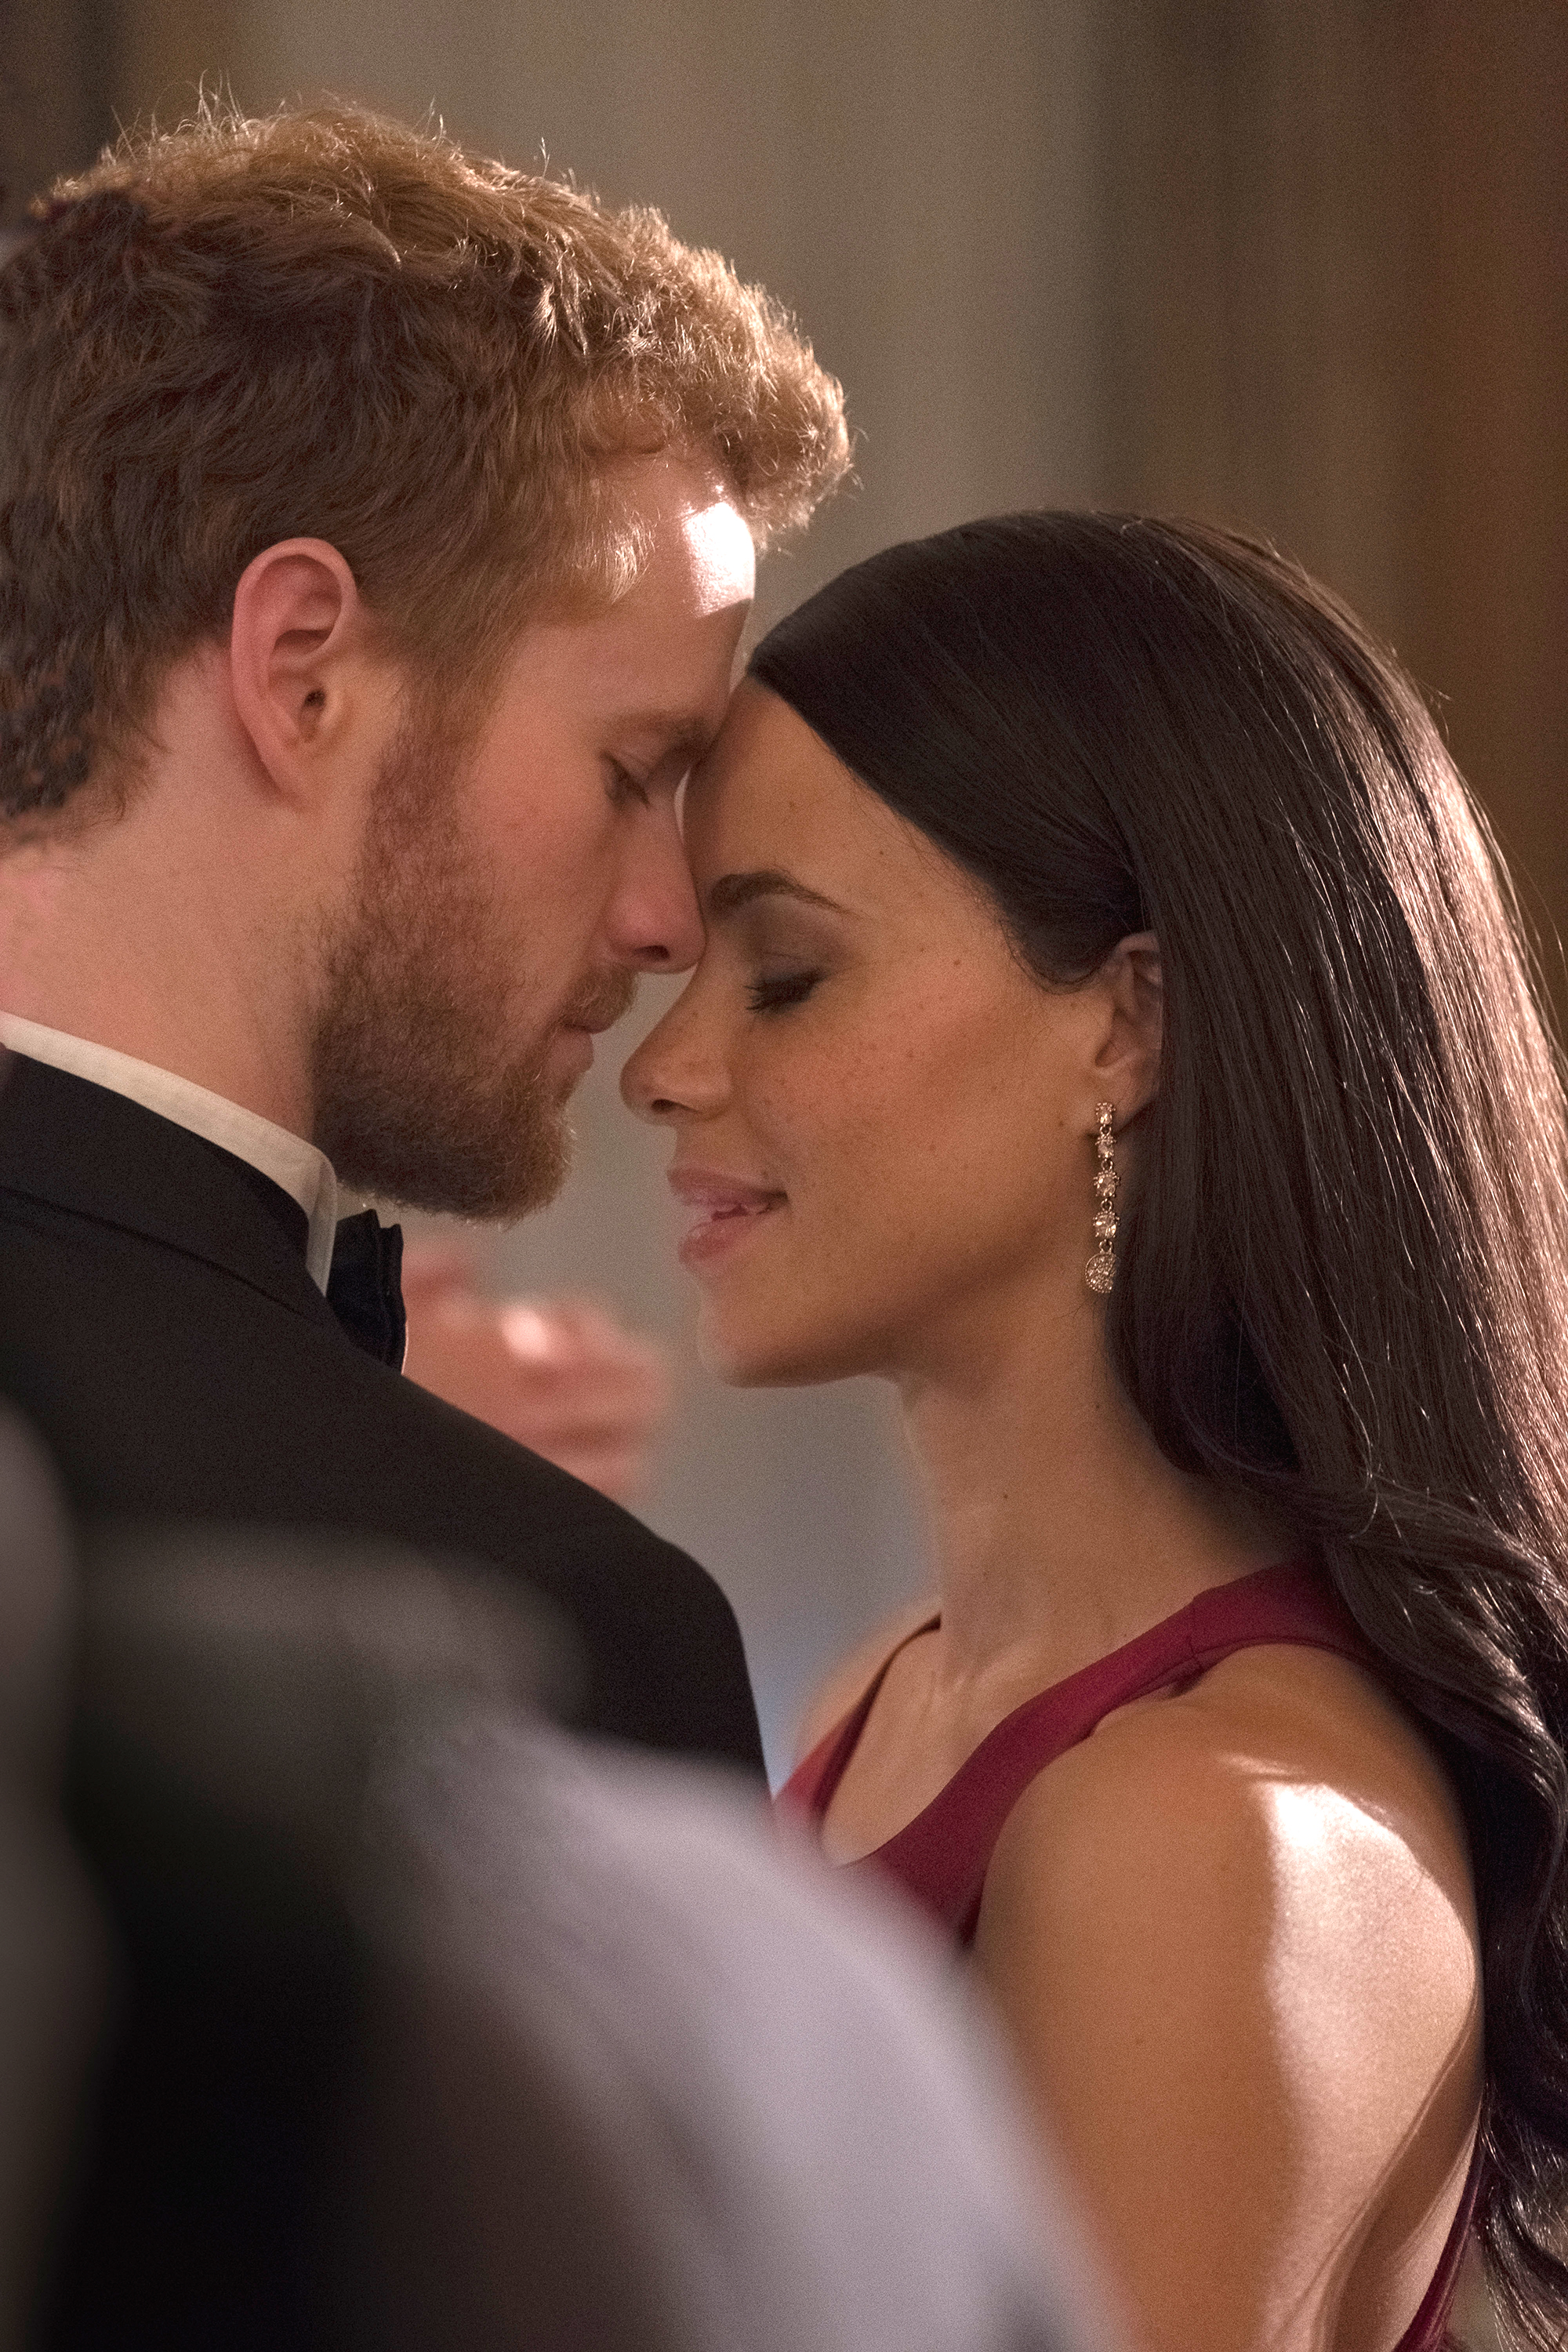 'Harry & Meghan: A Royal Romance' Movie Trailer Shows Royal Couple in Bed, Getting Engaged: Watch